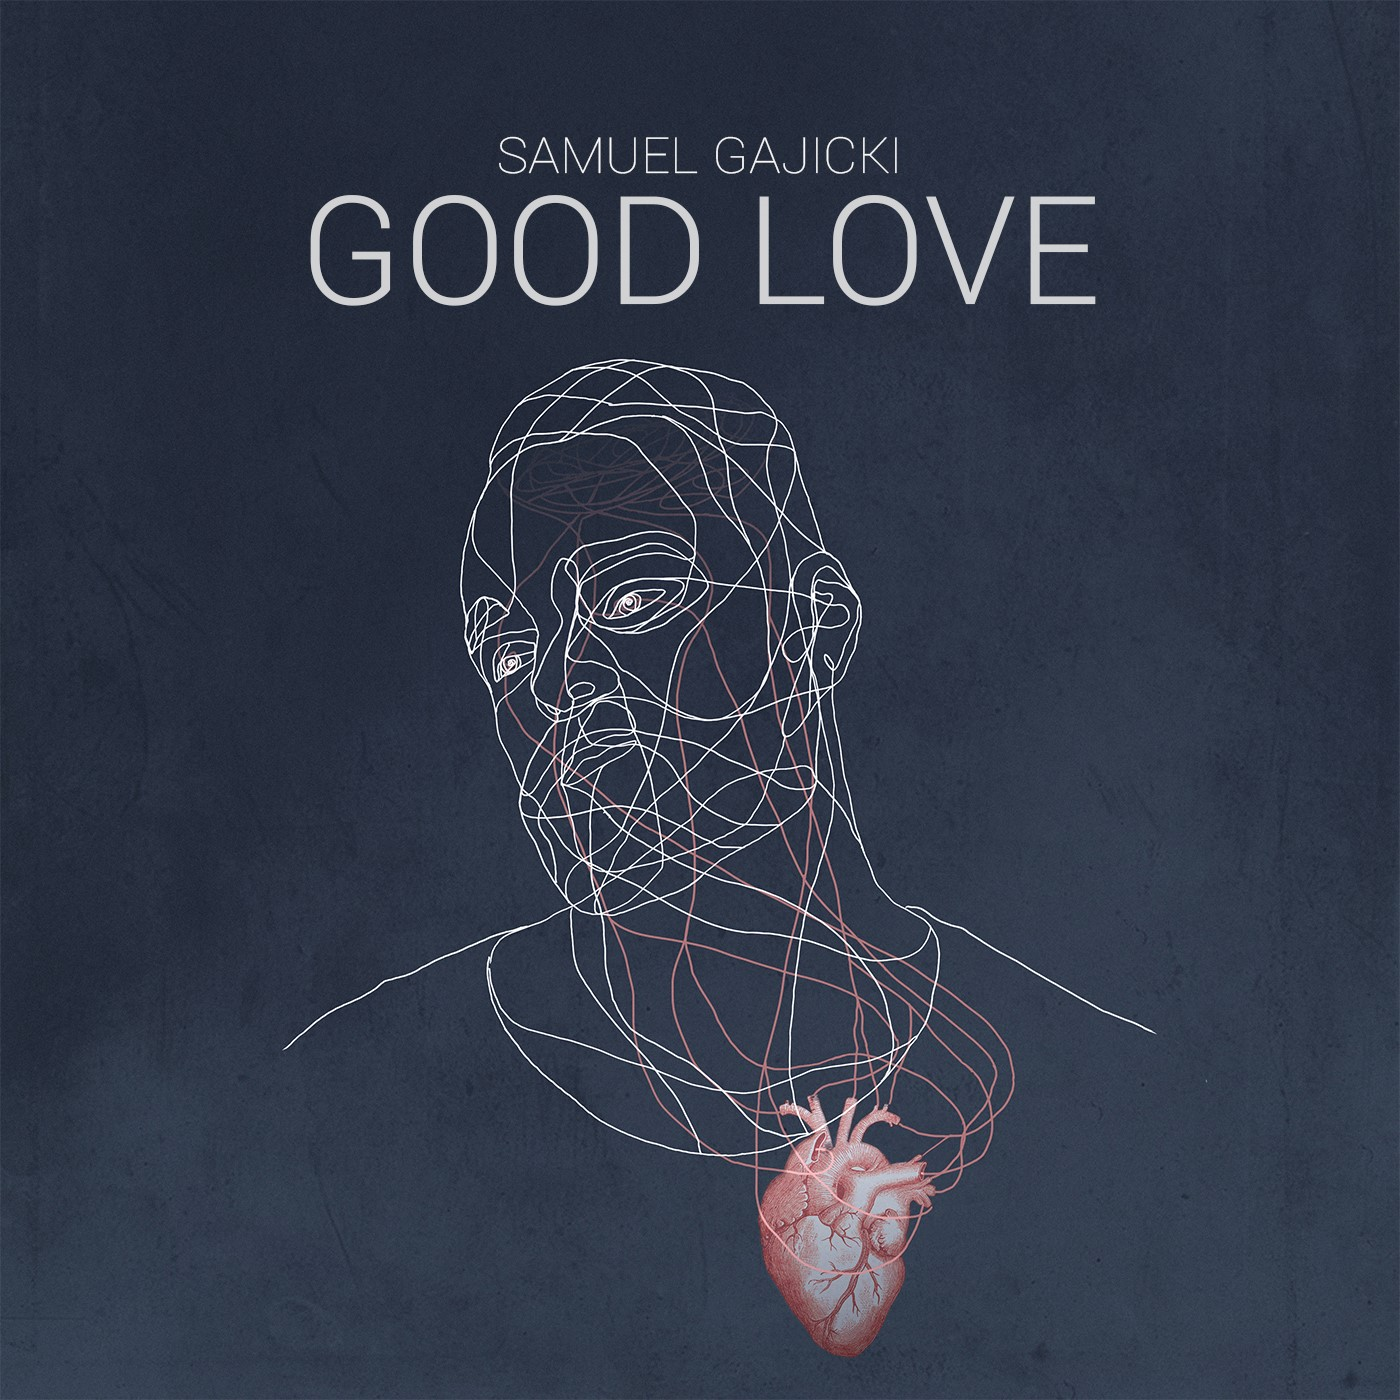 Samuel Gajicki - Good Love